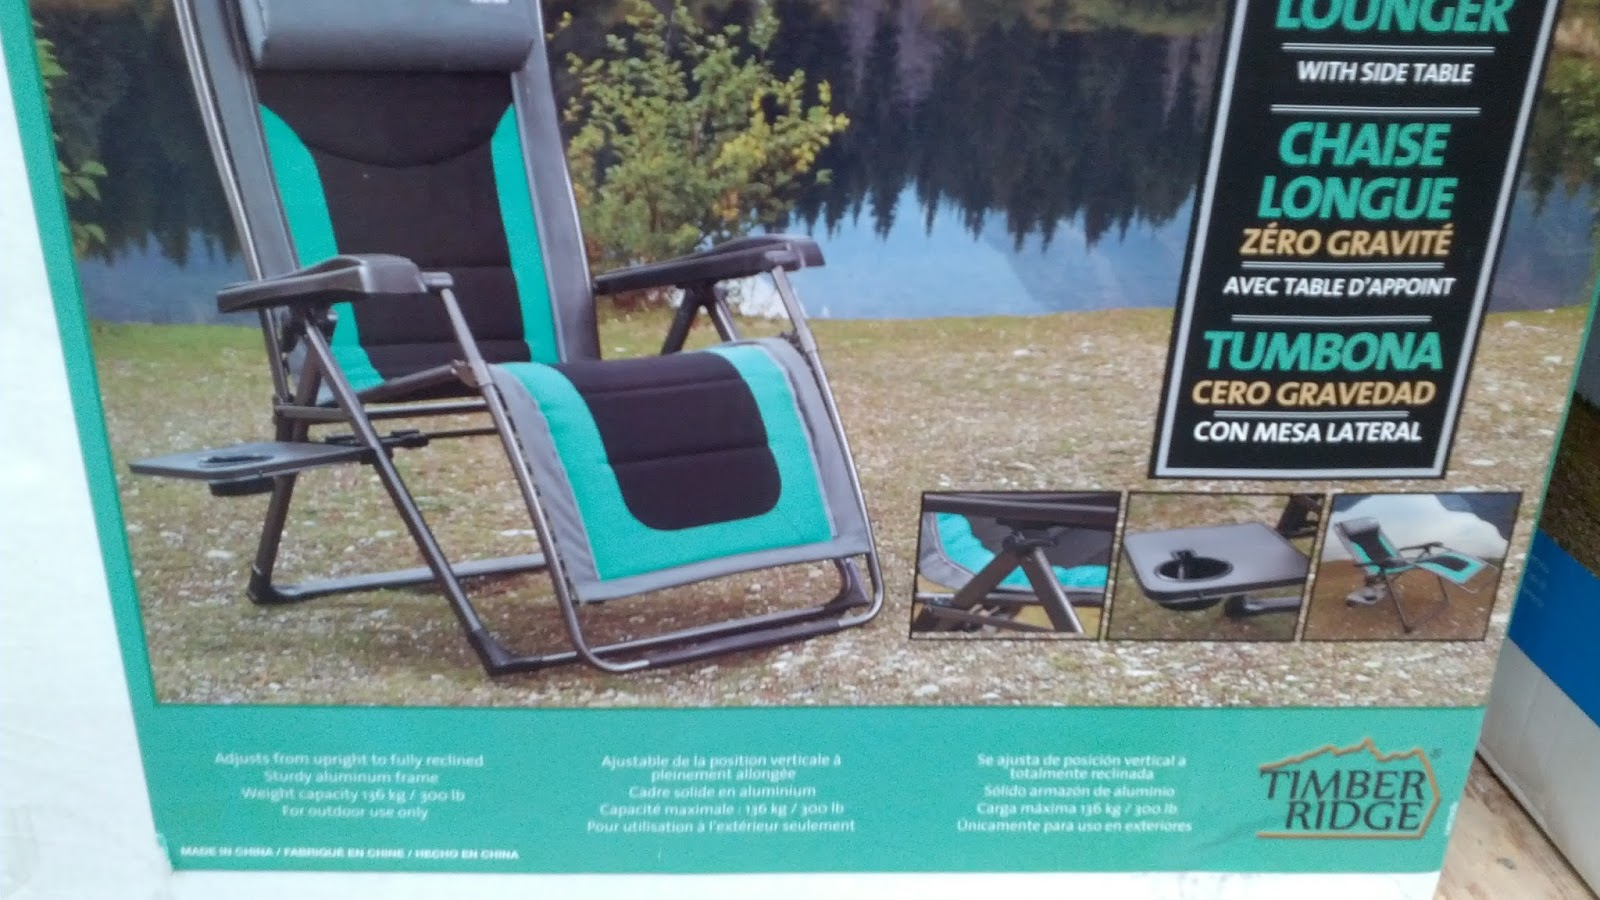 Zero Gravity Lounge Chair Costco Rocking Craigslist Timber Ridge And Lounger With Side